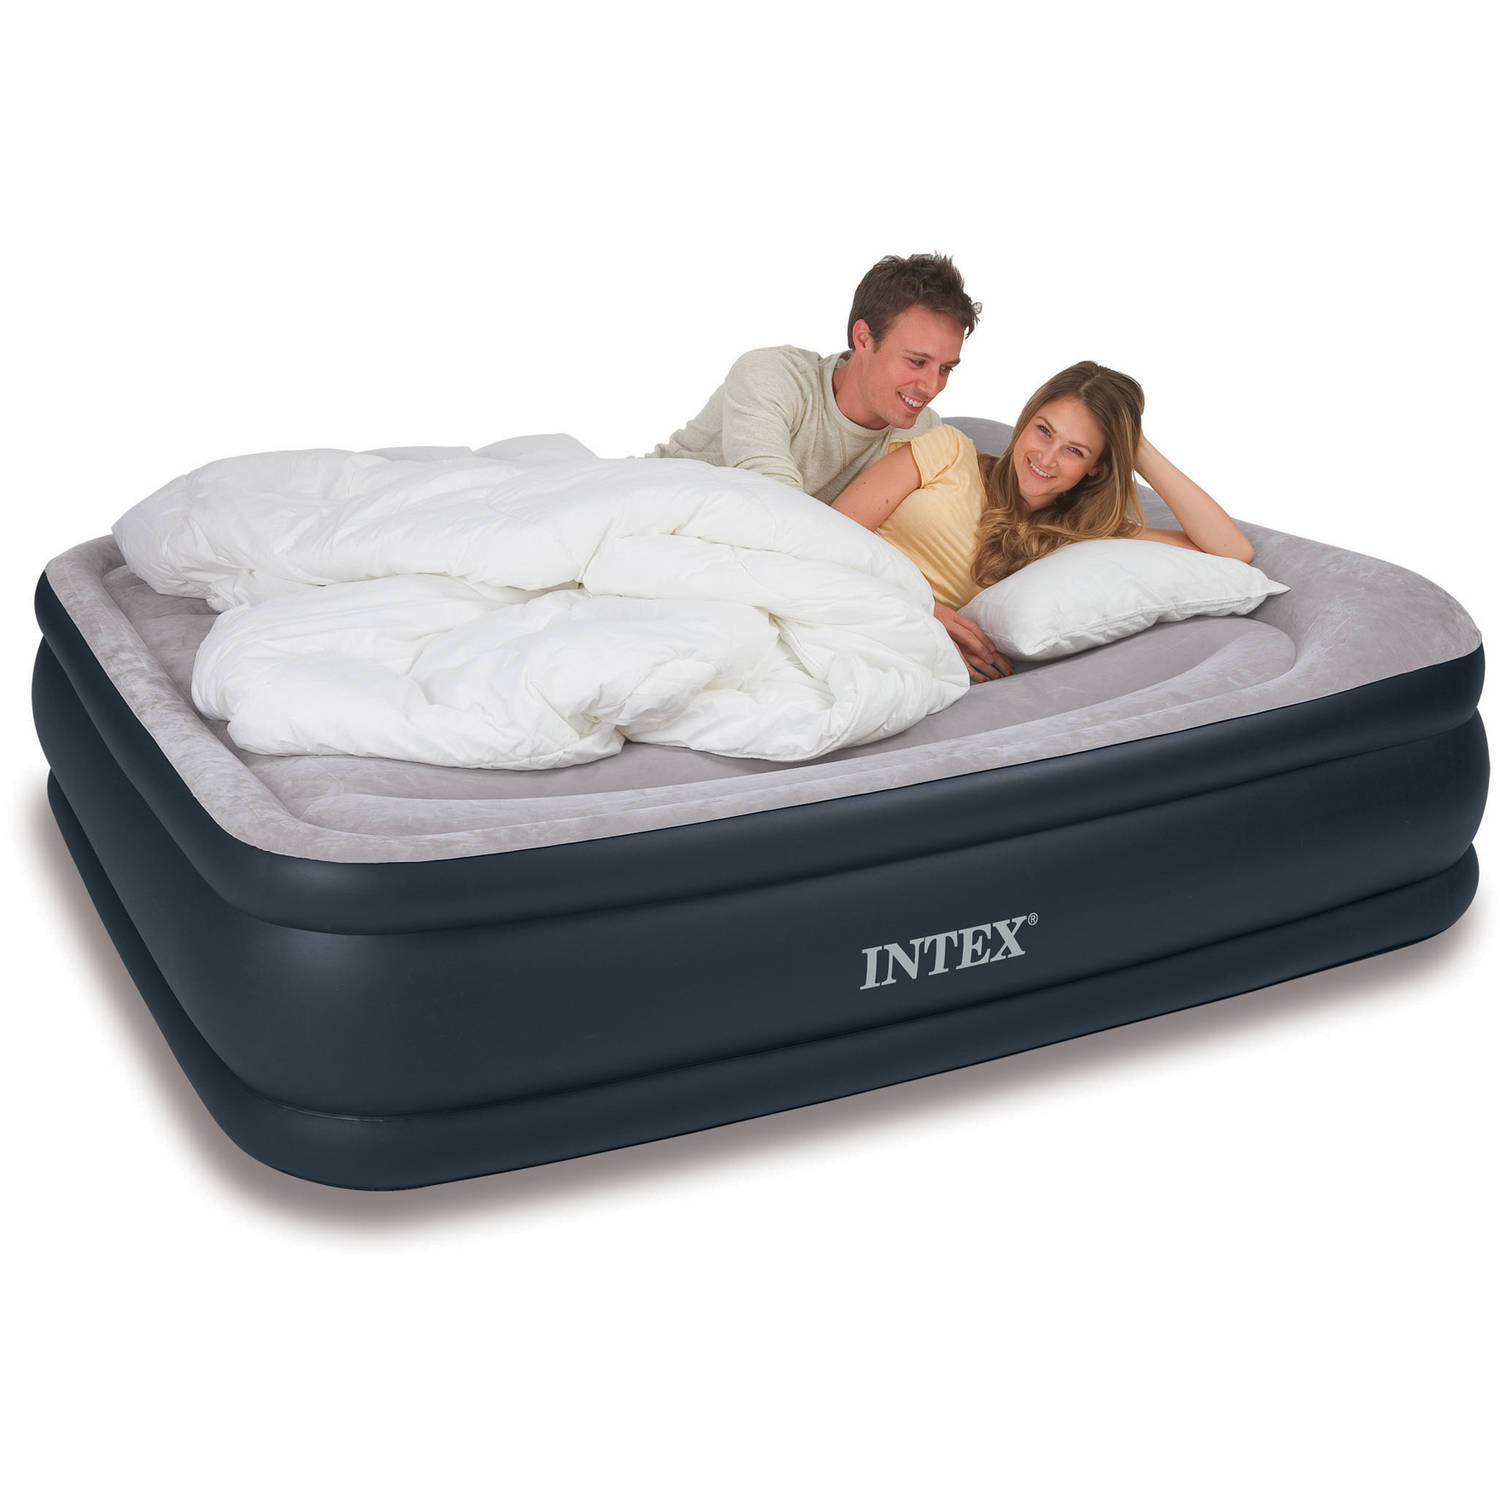 Intex Deluxe Raised Pillow Rest Airbed Mattress with Built in Pump - Twin, Full, Queen Sizes Available